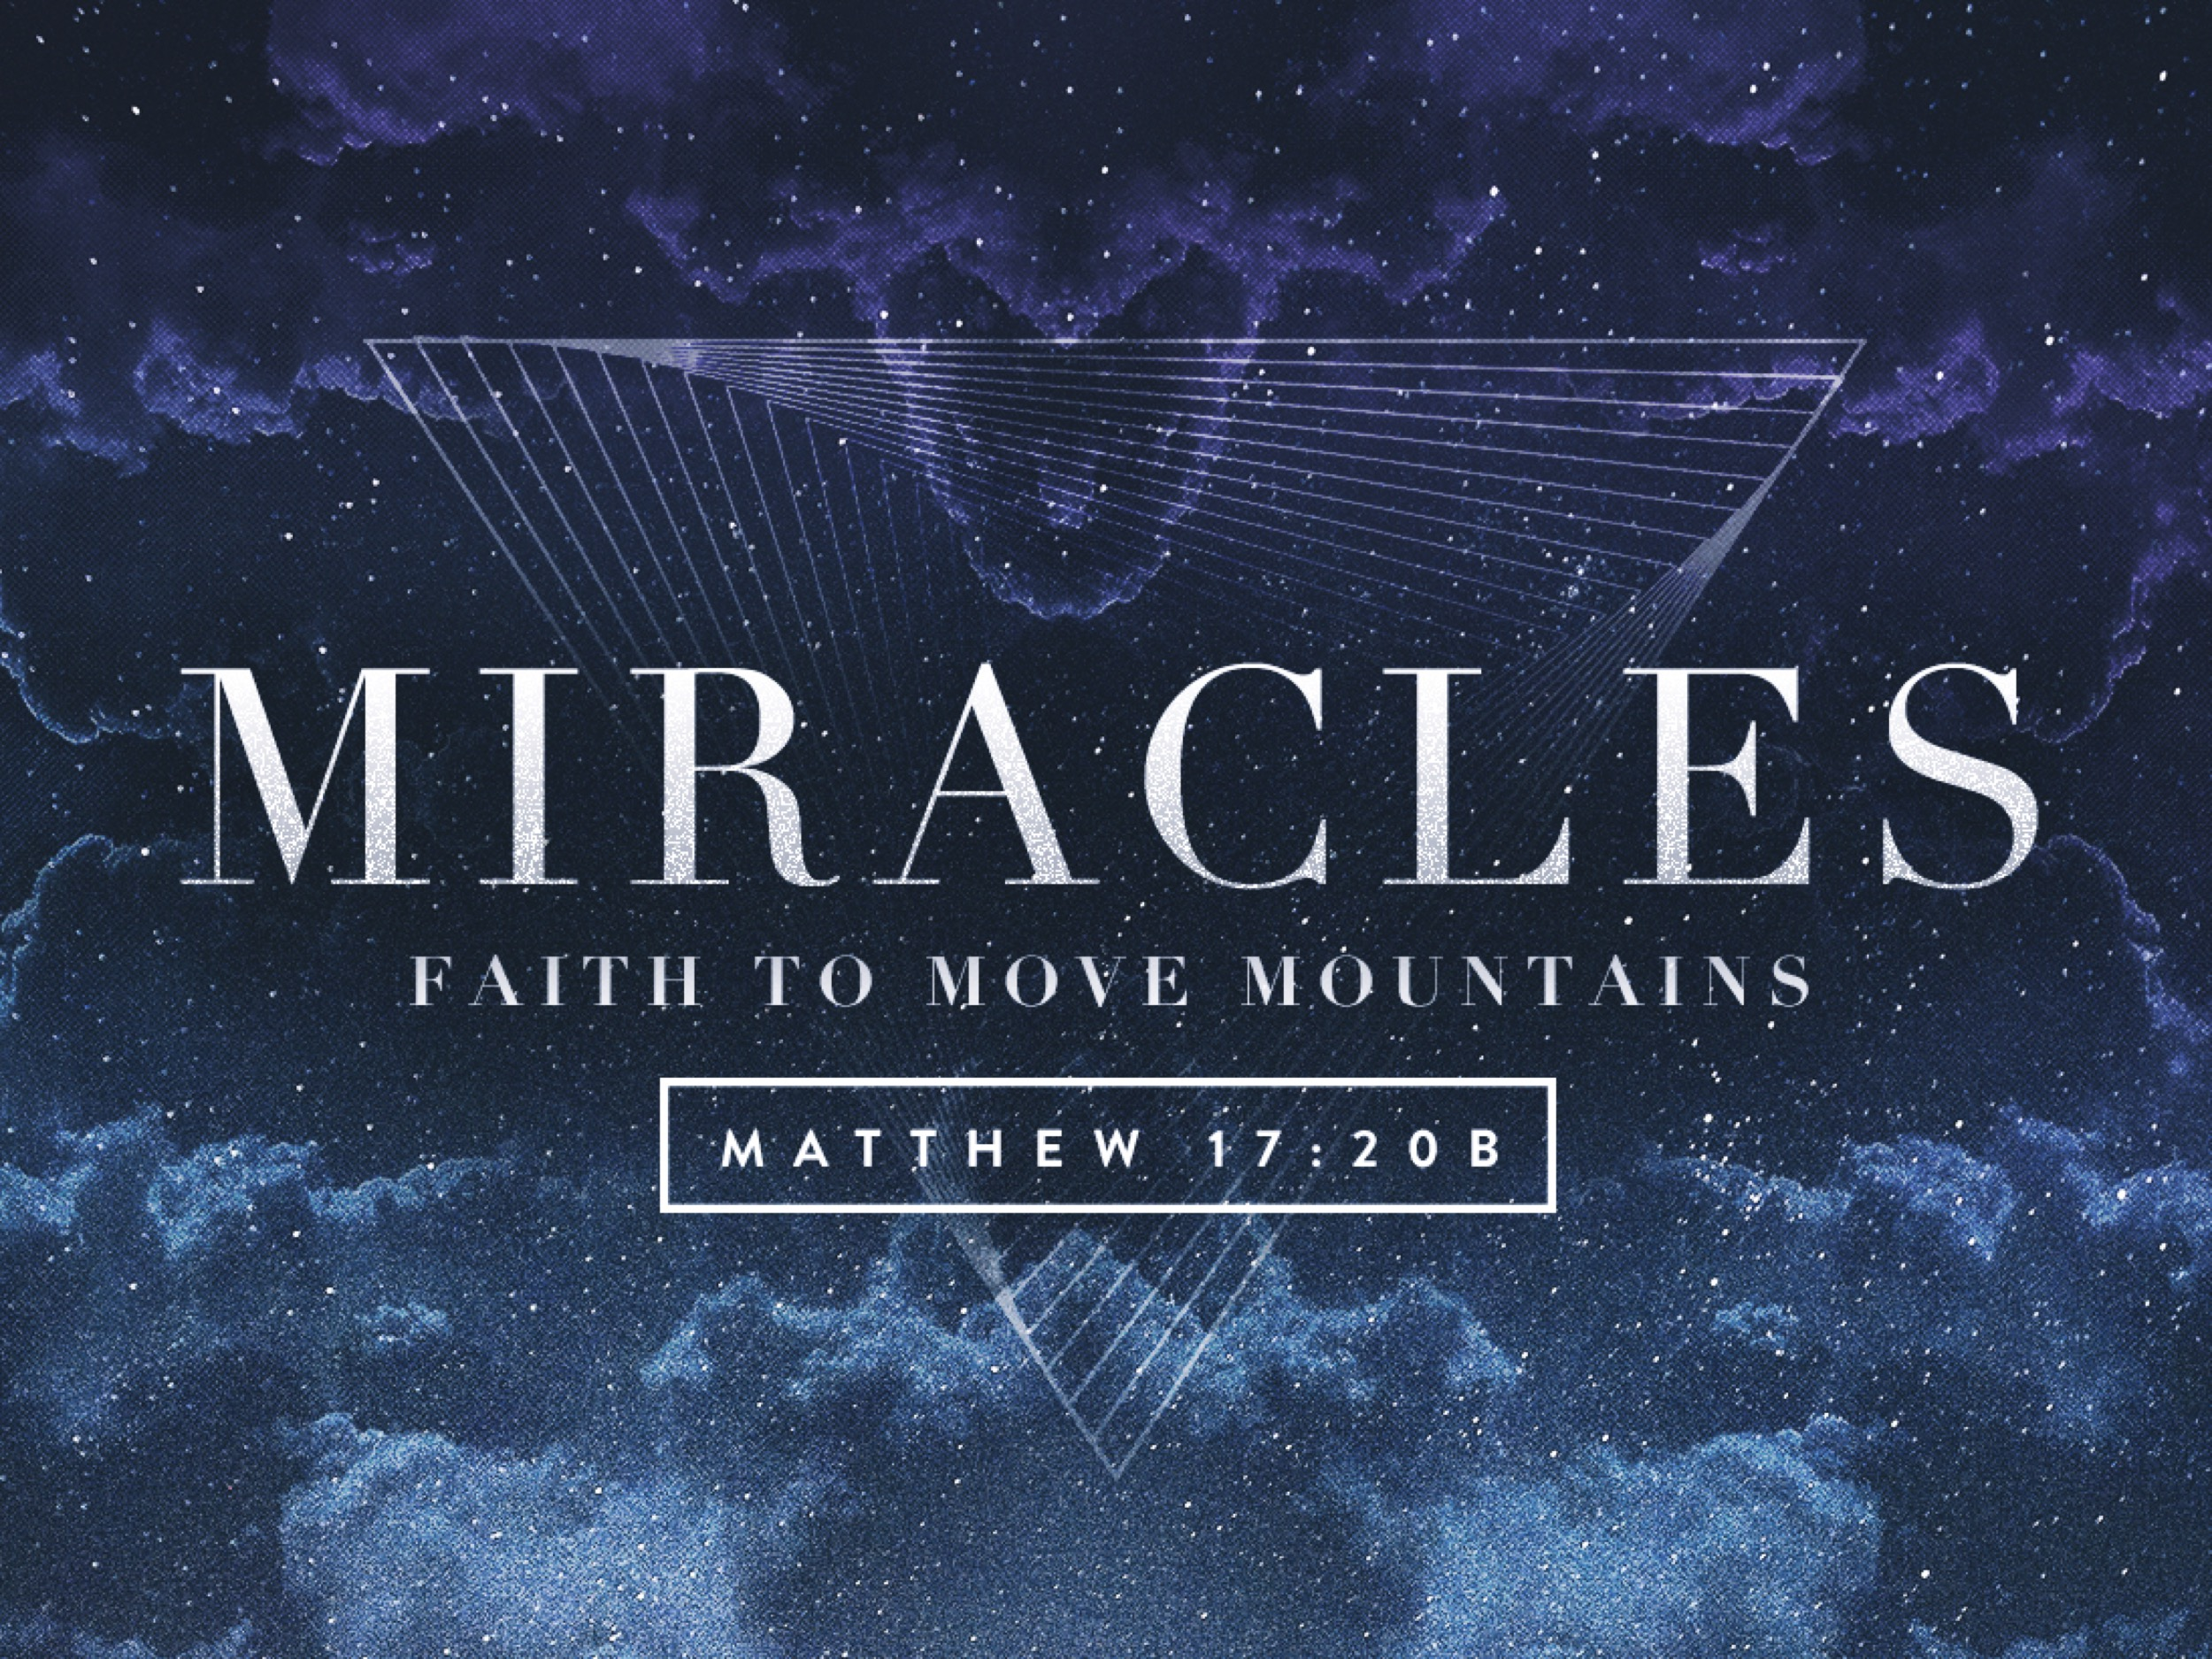 Where Be All His Miracles?